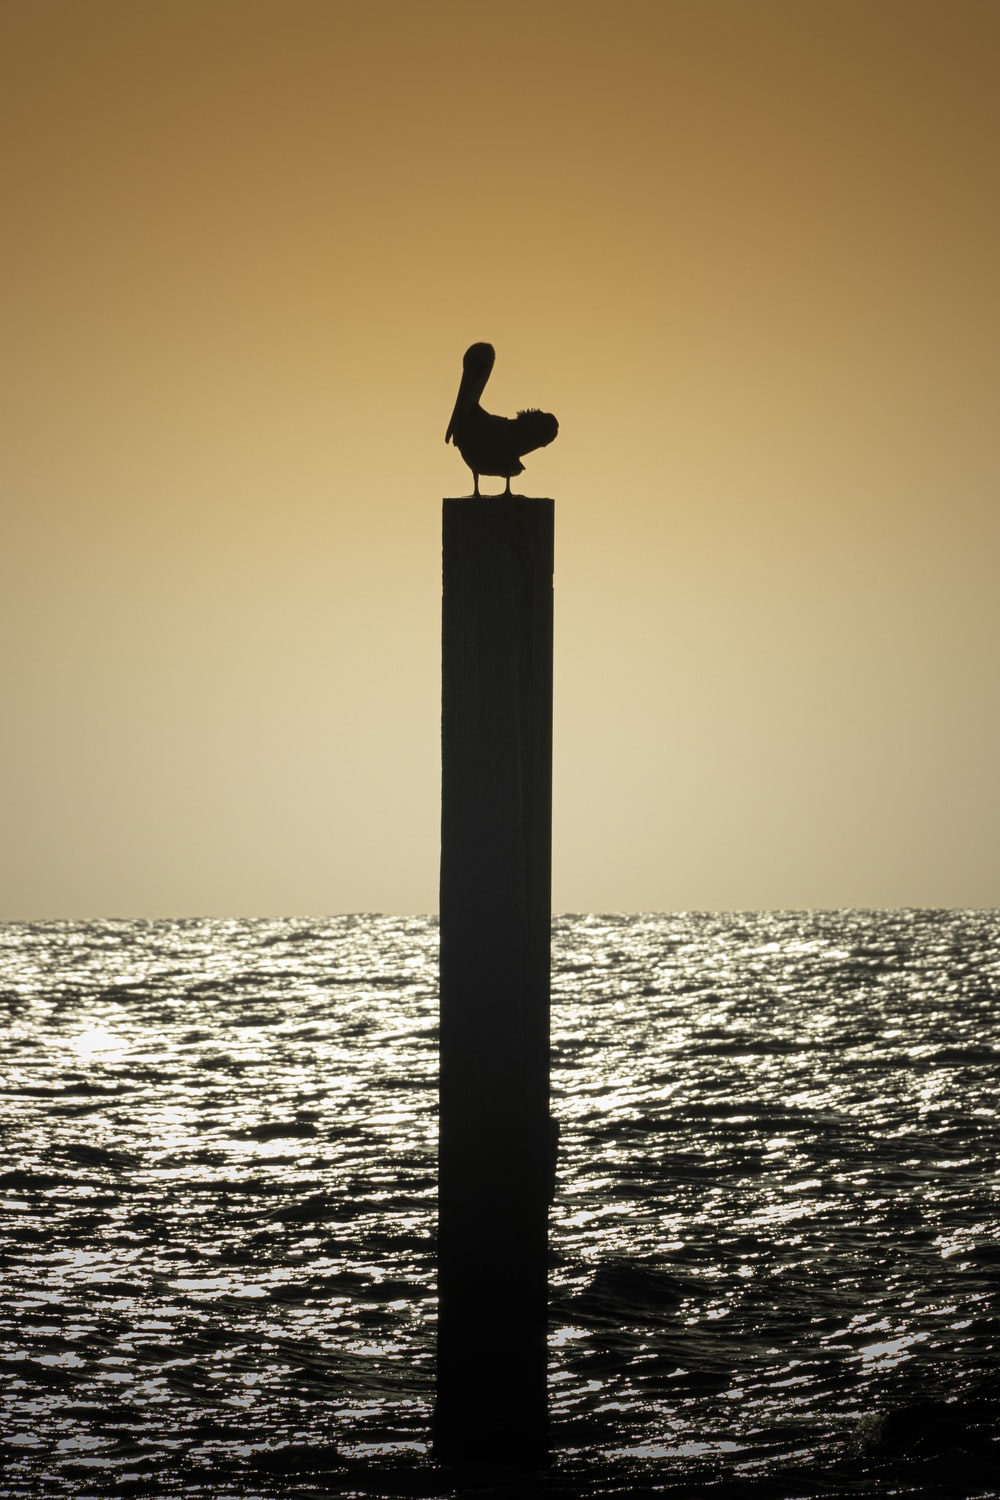 silhouette of bird on post during sunset